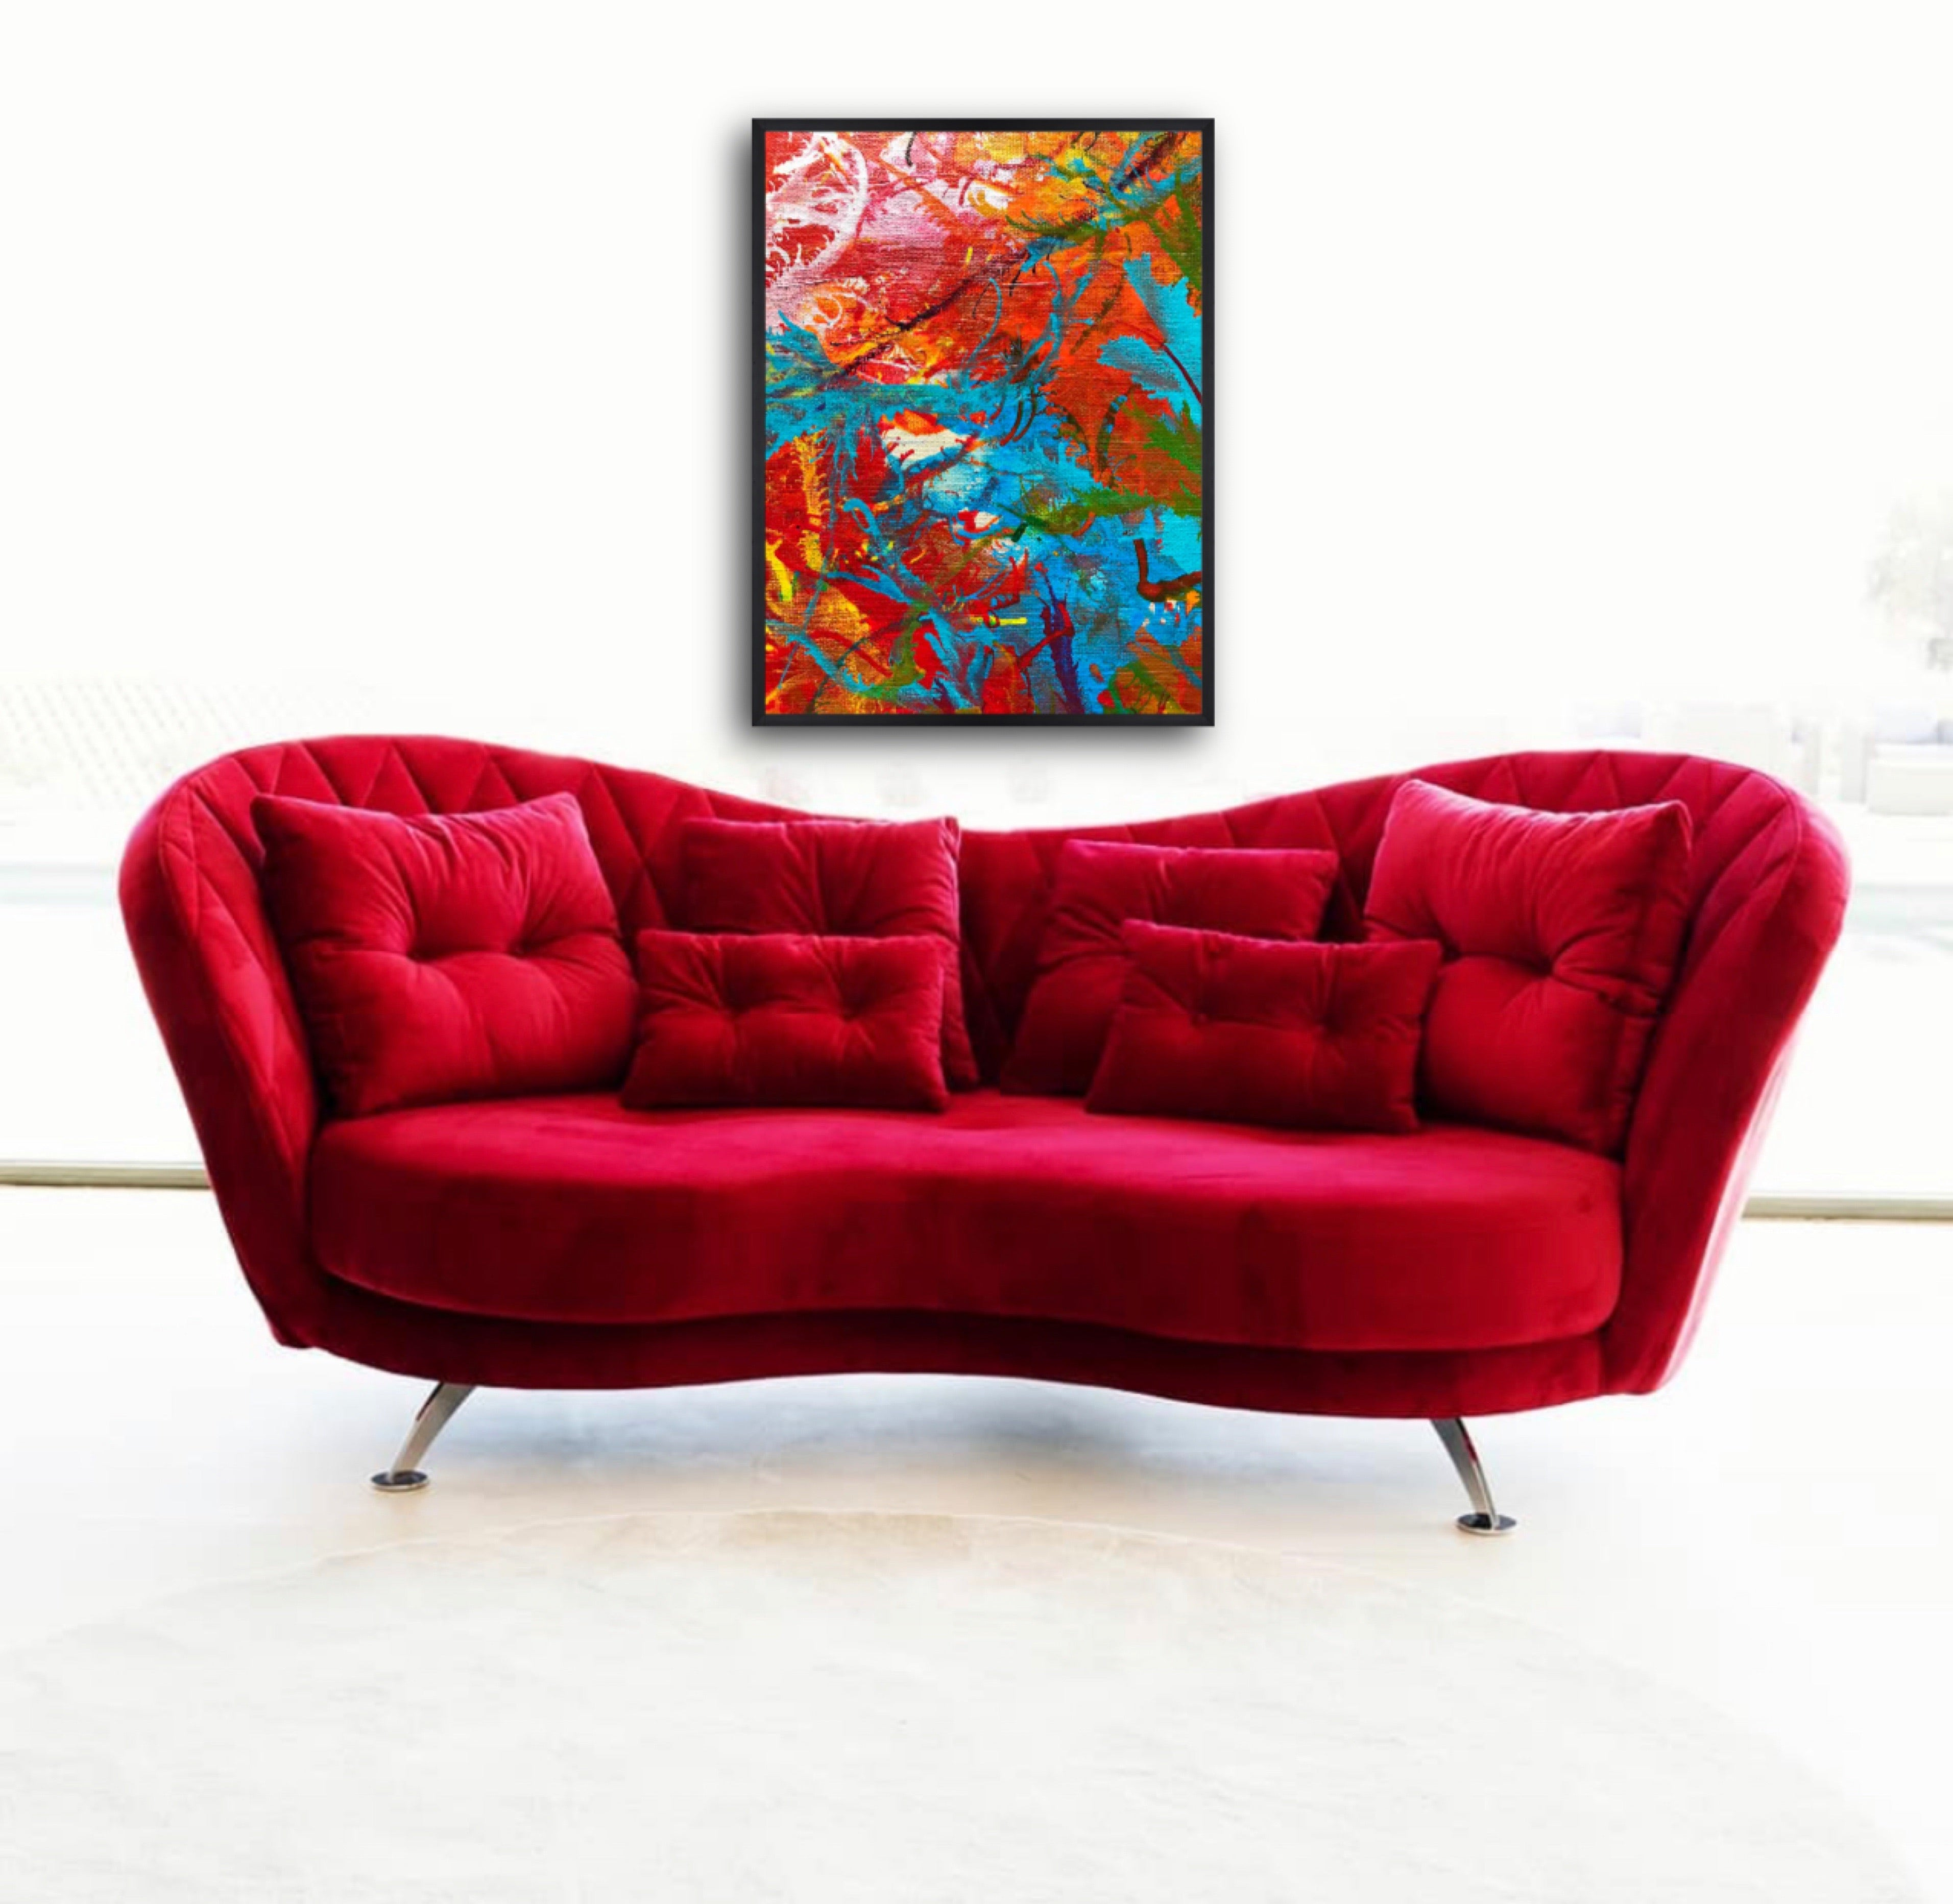 Adrenaline, Part 1 - Limited Edition, Abstract Art Print